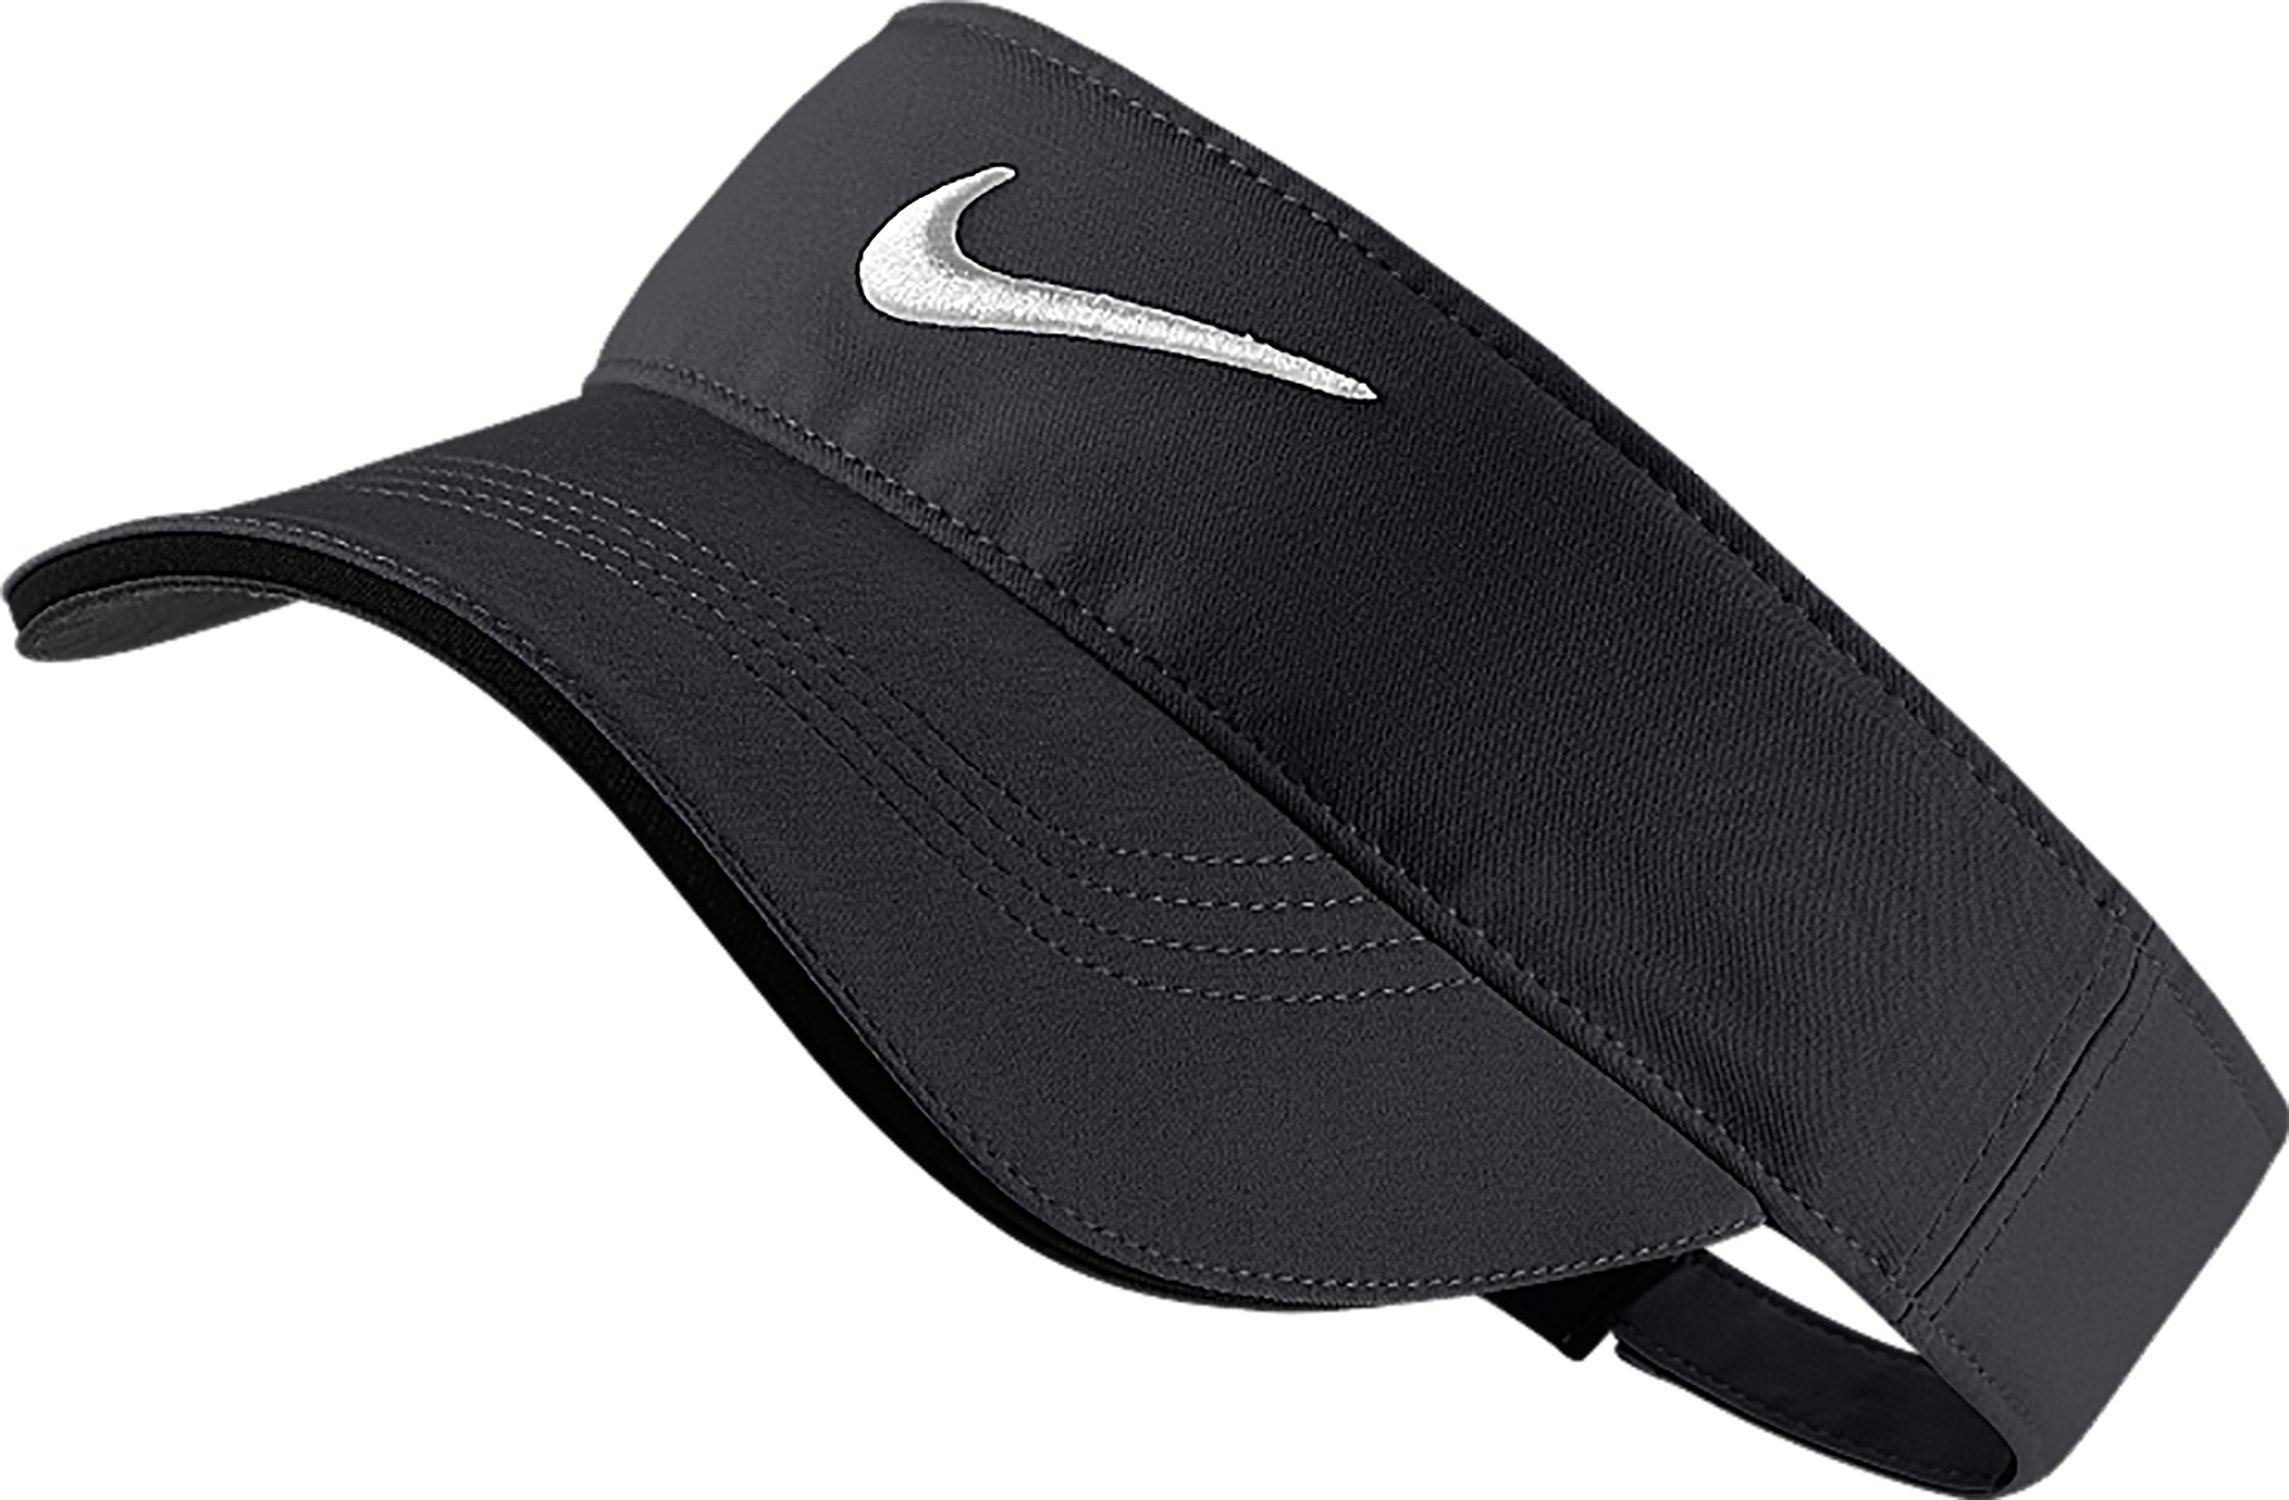 Nike Golf Tech Tour Adjustable Visor (Dark Grey/Anthracite/White)